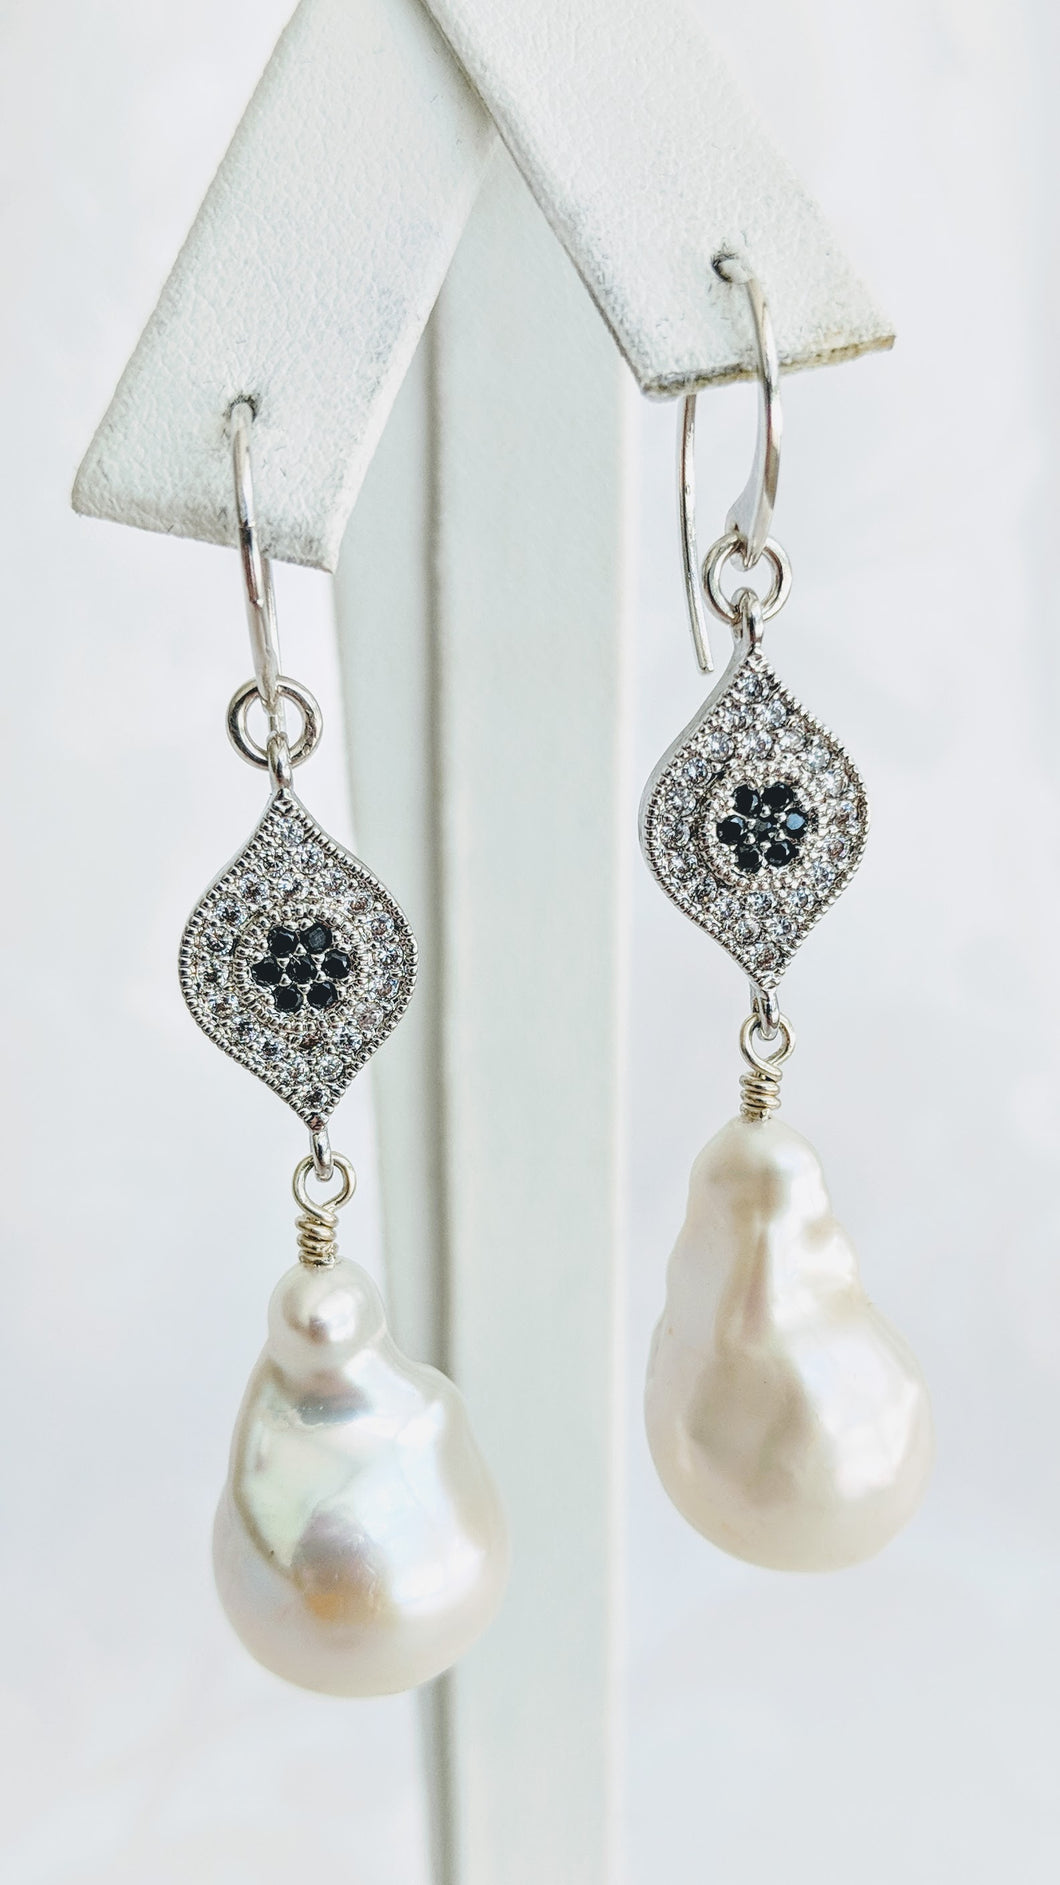 Baroque freshwater pearl earrings with silver/cubic zirconia detail